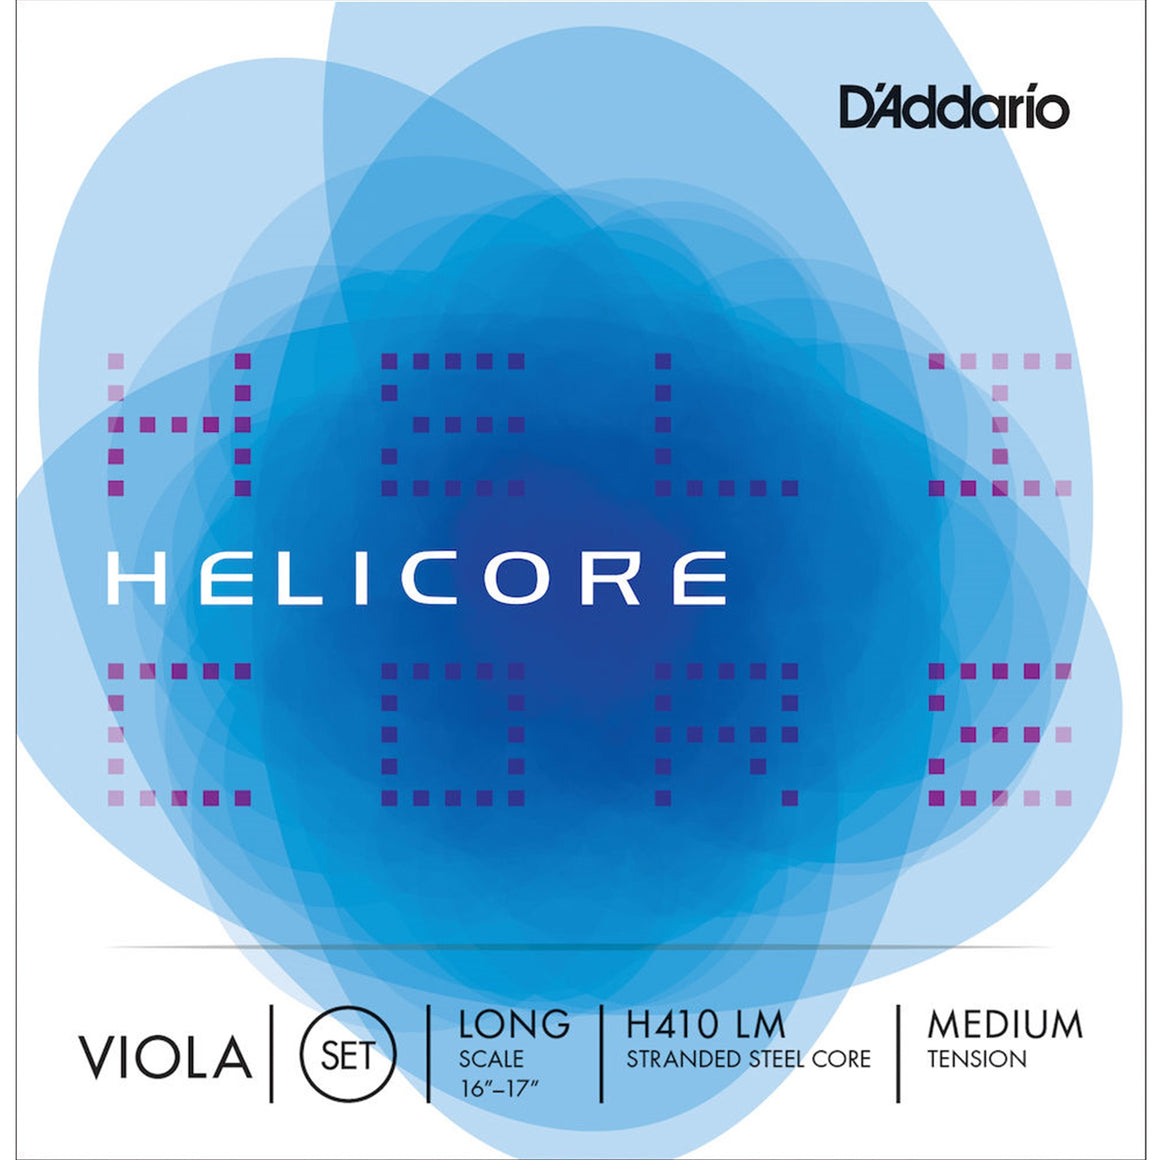 D'ADDARIO H410LM Helicore Viola String Set, Long Scale, Medium Tension 16-16 1/2""